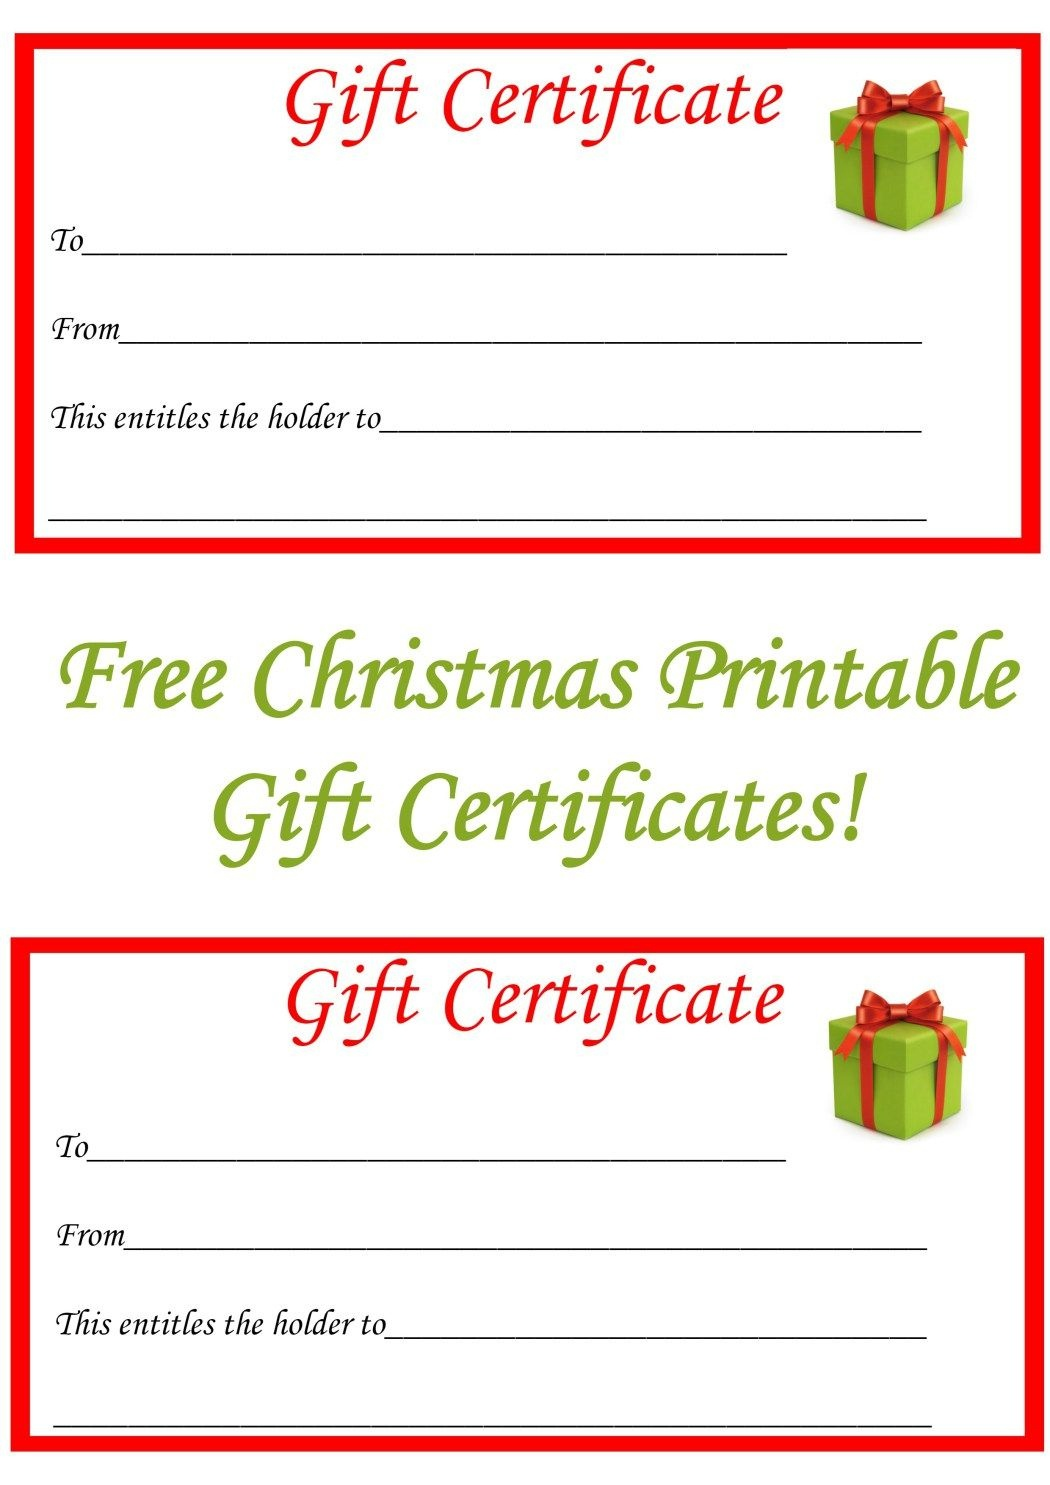 Free Christmas Printable Gift Certificates | Gift Ideas | Christmas - Free Printable Gift Certificate Templates For Massage